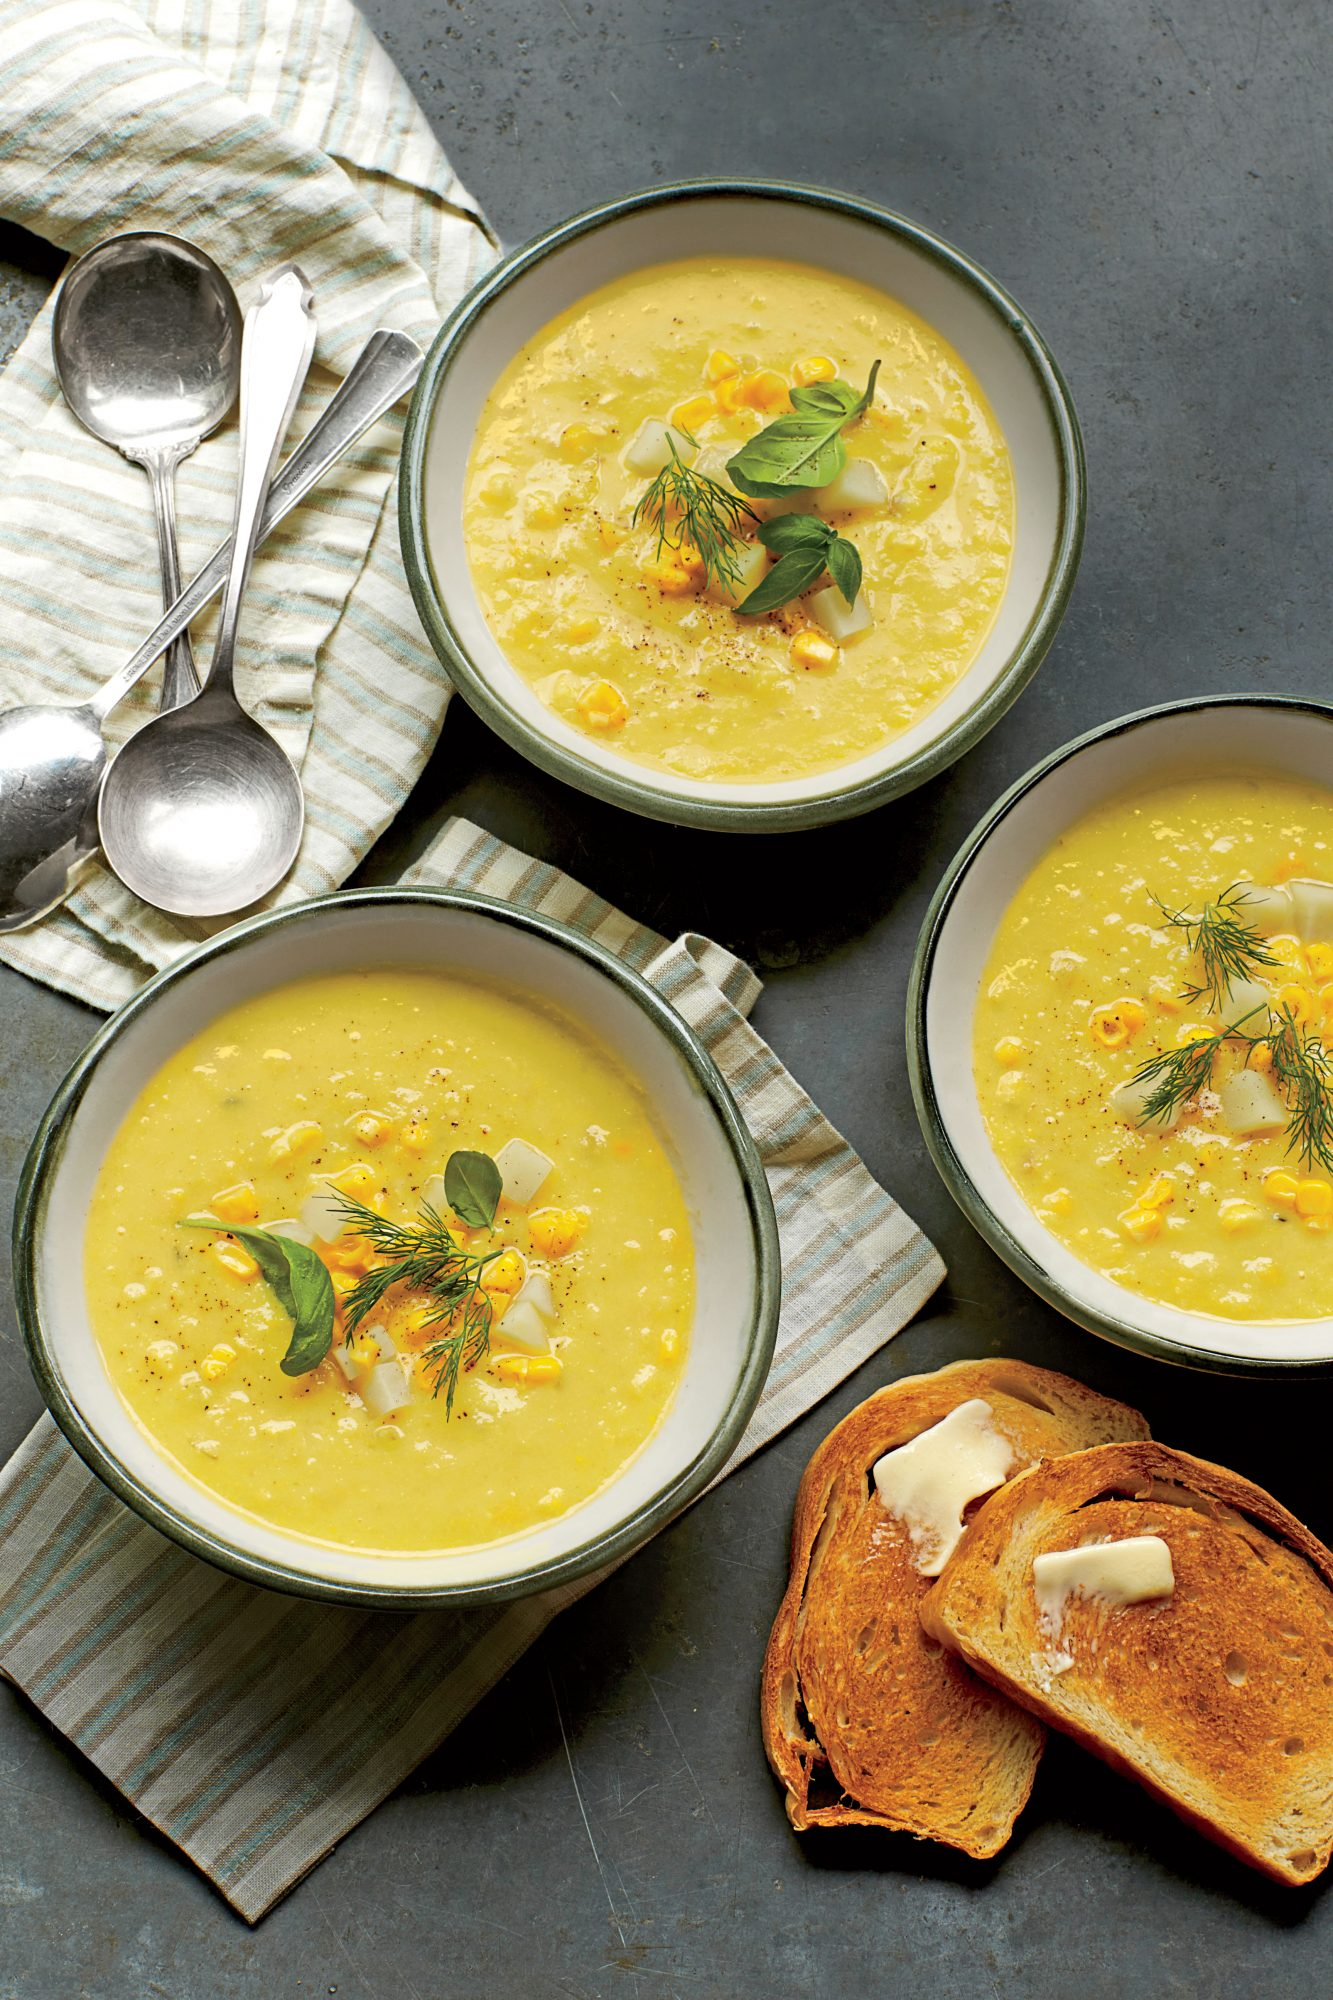 Summer Corn-and-Golden Potato Chowder